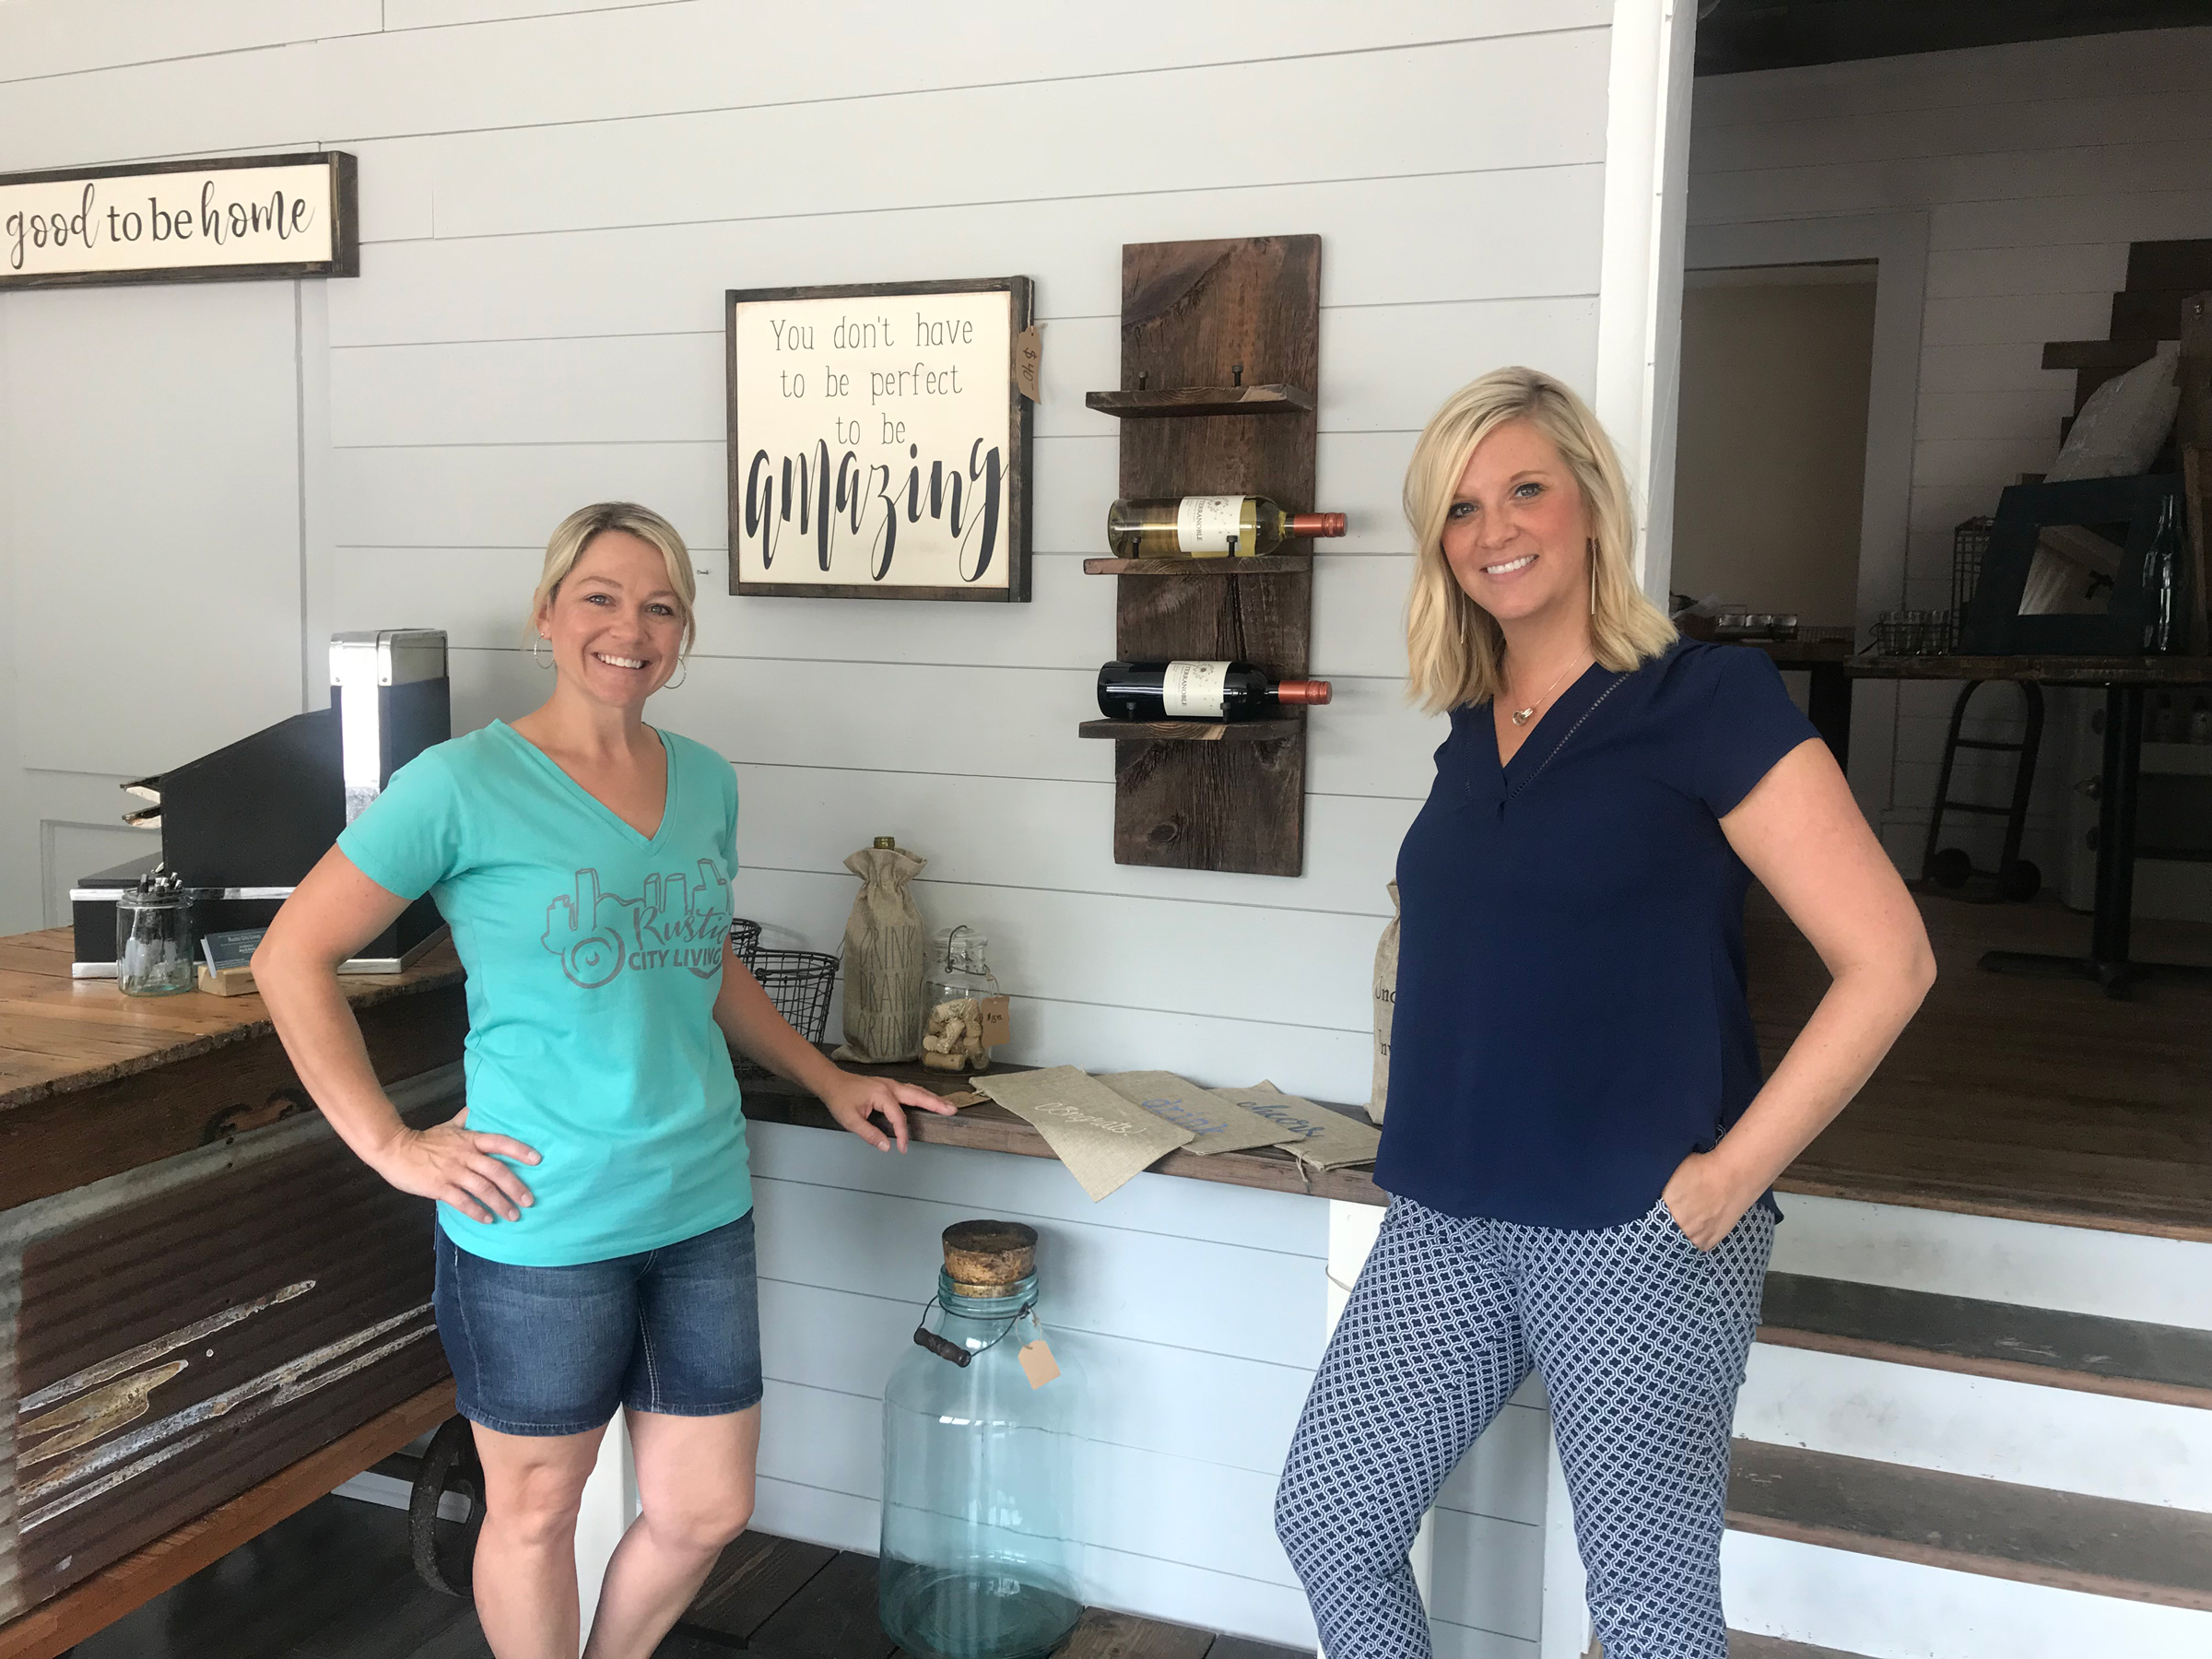 Rustic City Living owners Amy Calvert and Kristy Dipiazza.